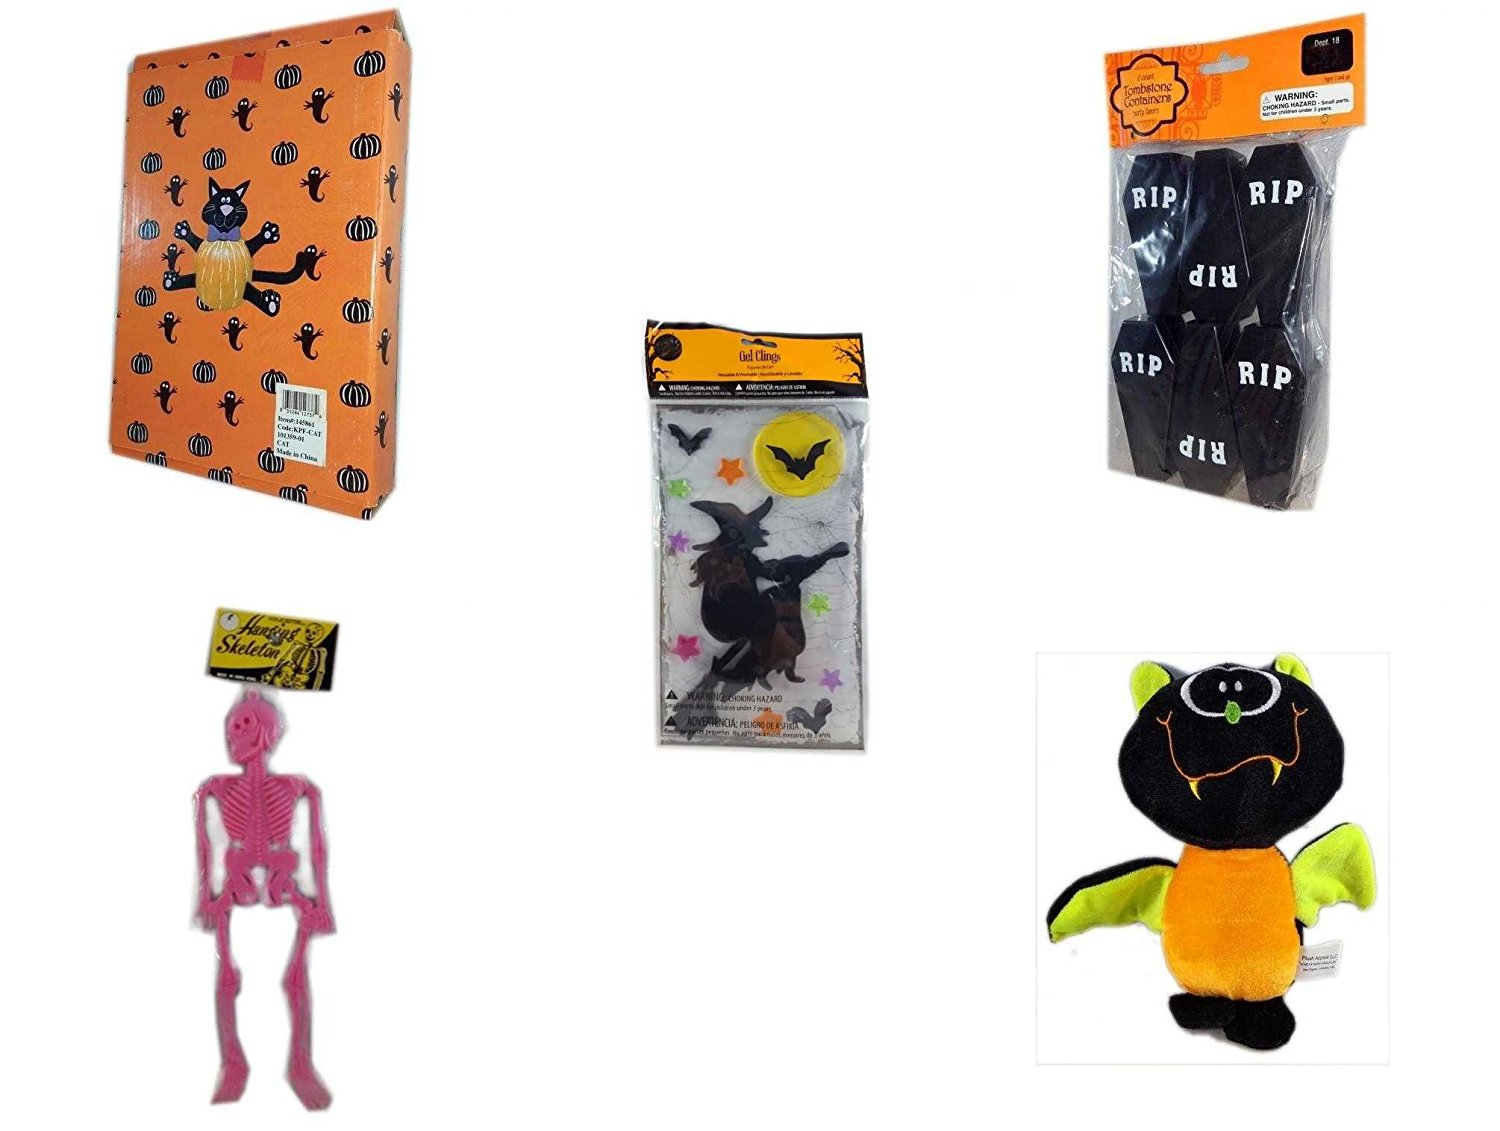 Halloween Fun Gift Bundle [5 piece] - Halloween Cat Pumpkin Push In 5 Piece Head Arms Legs - Tombstone Containers Party Favors 6 Count - Gel Clings Witch, Bats, Stars - Hanging Skeleton Pink - Plush